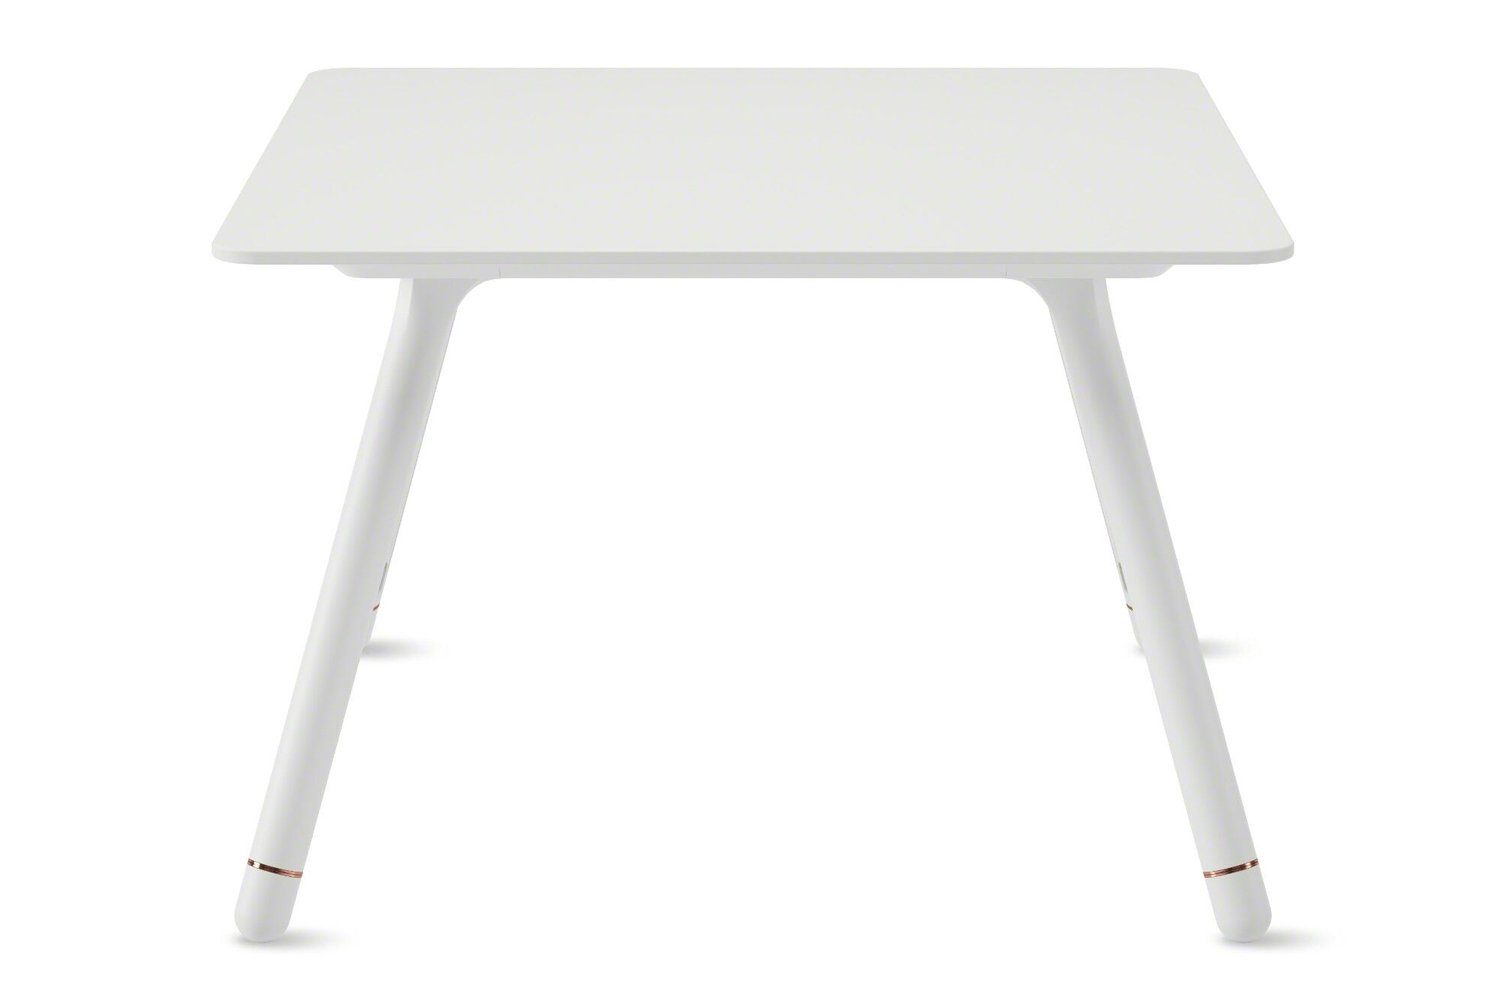 Options include seated or standing height up to 10 feet, and numerous frame and leg color options with Coalesse Color.